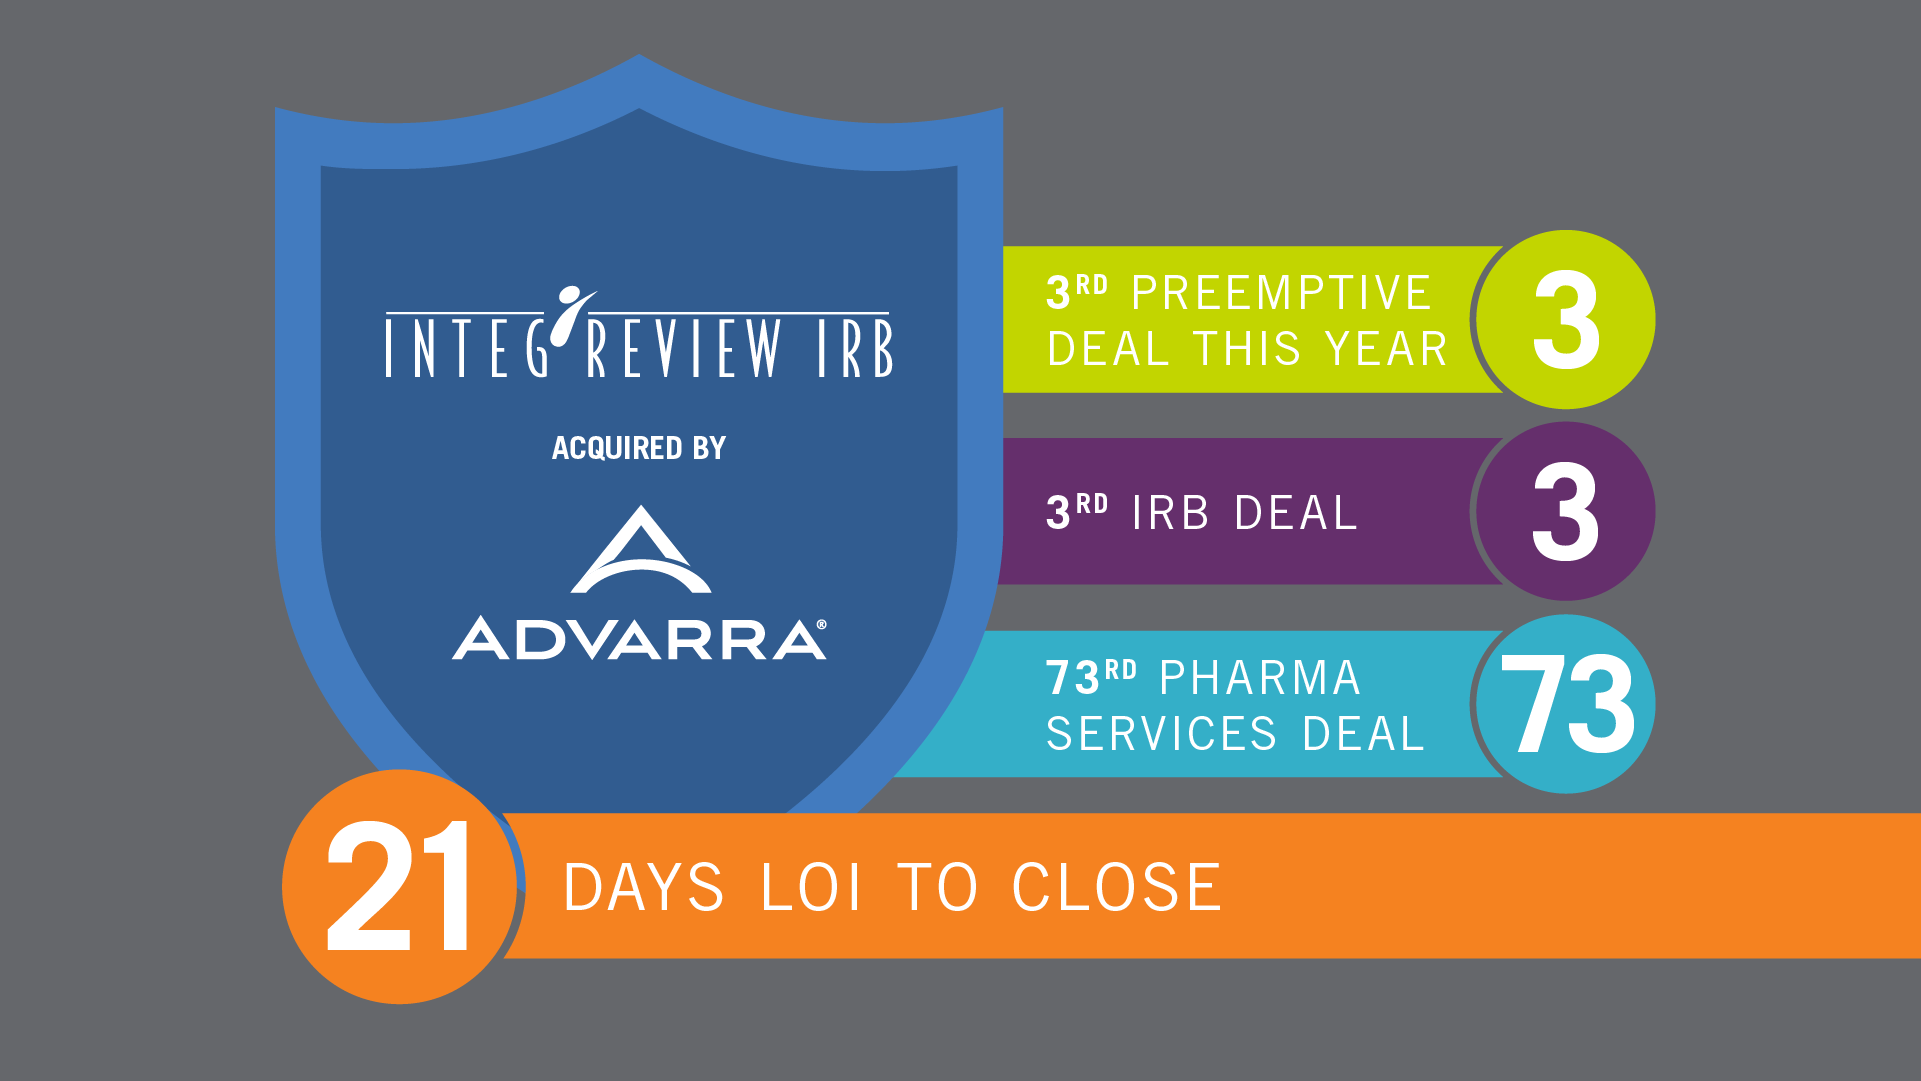 Early Phase Specialist IntegReview Joins Advarra's IRB Platform